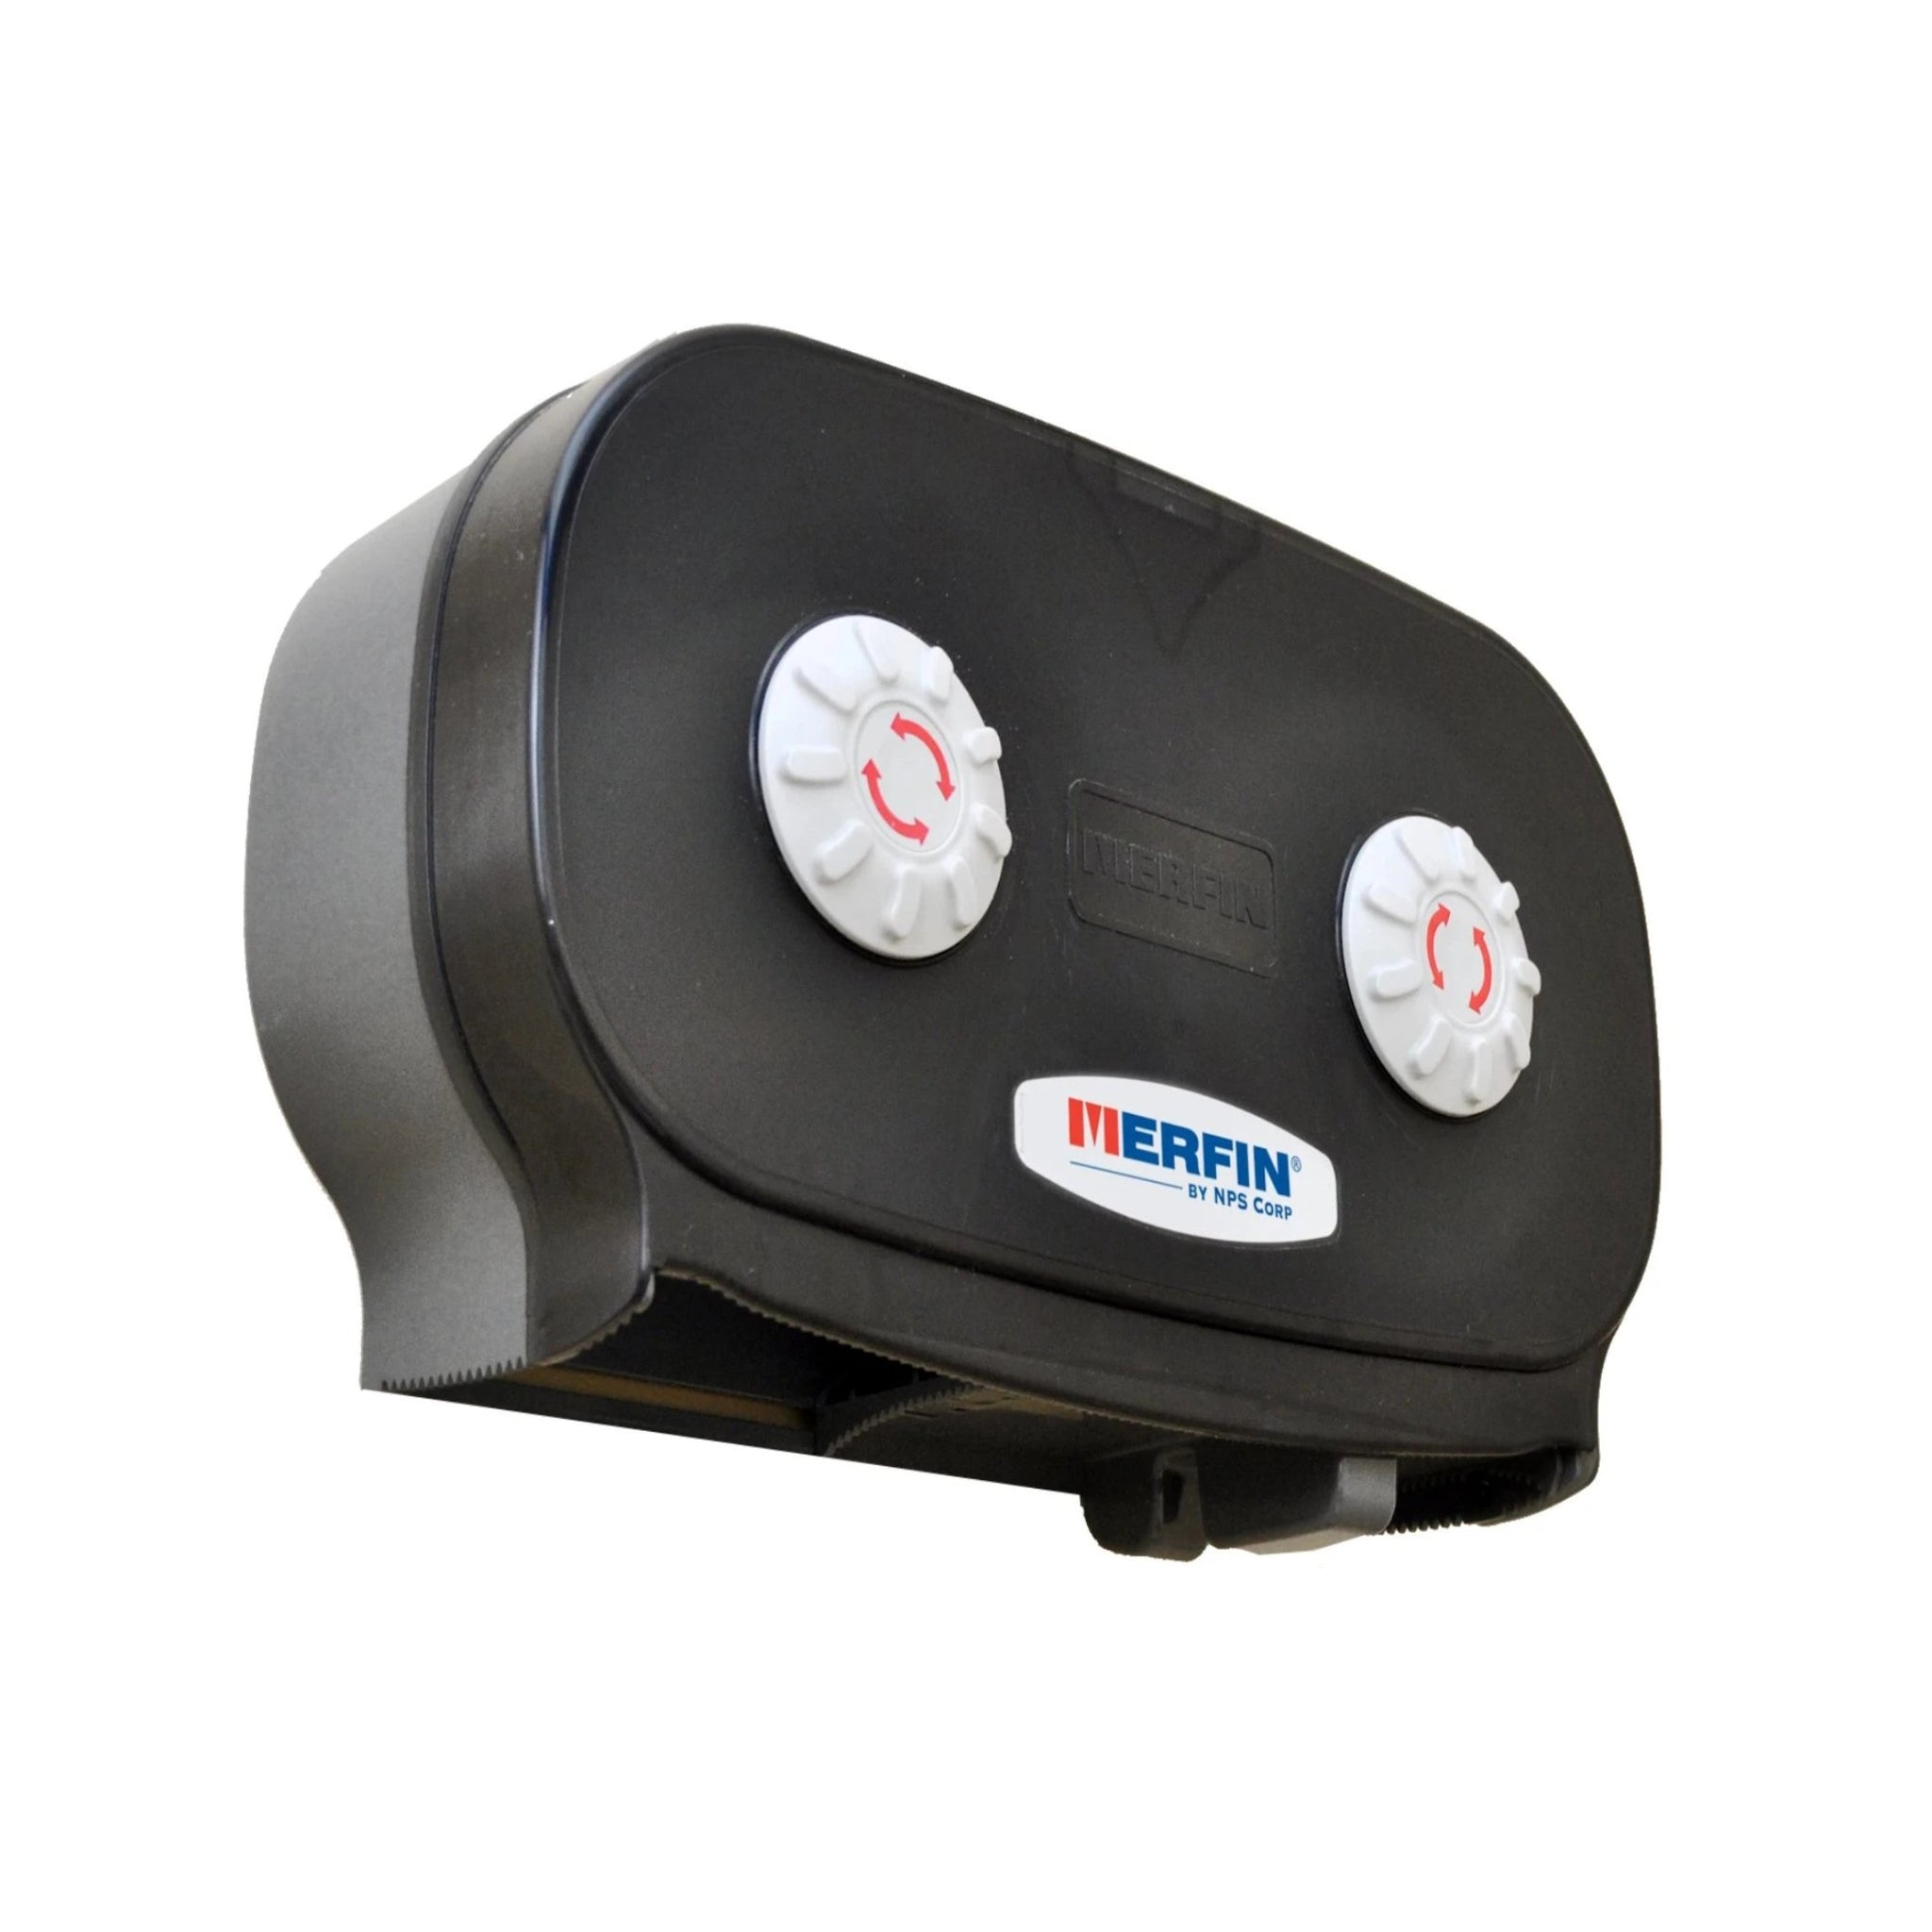 "DISPENSER/ Toilet Tissue/ System/ Merfin/ 7"" Jumbo, Black"